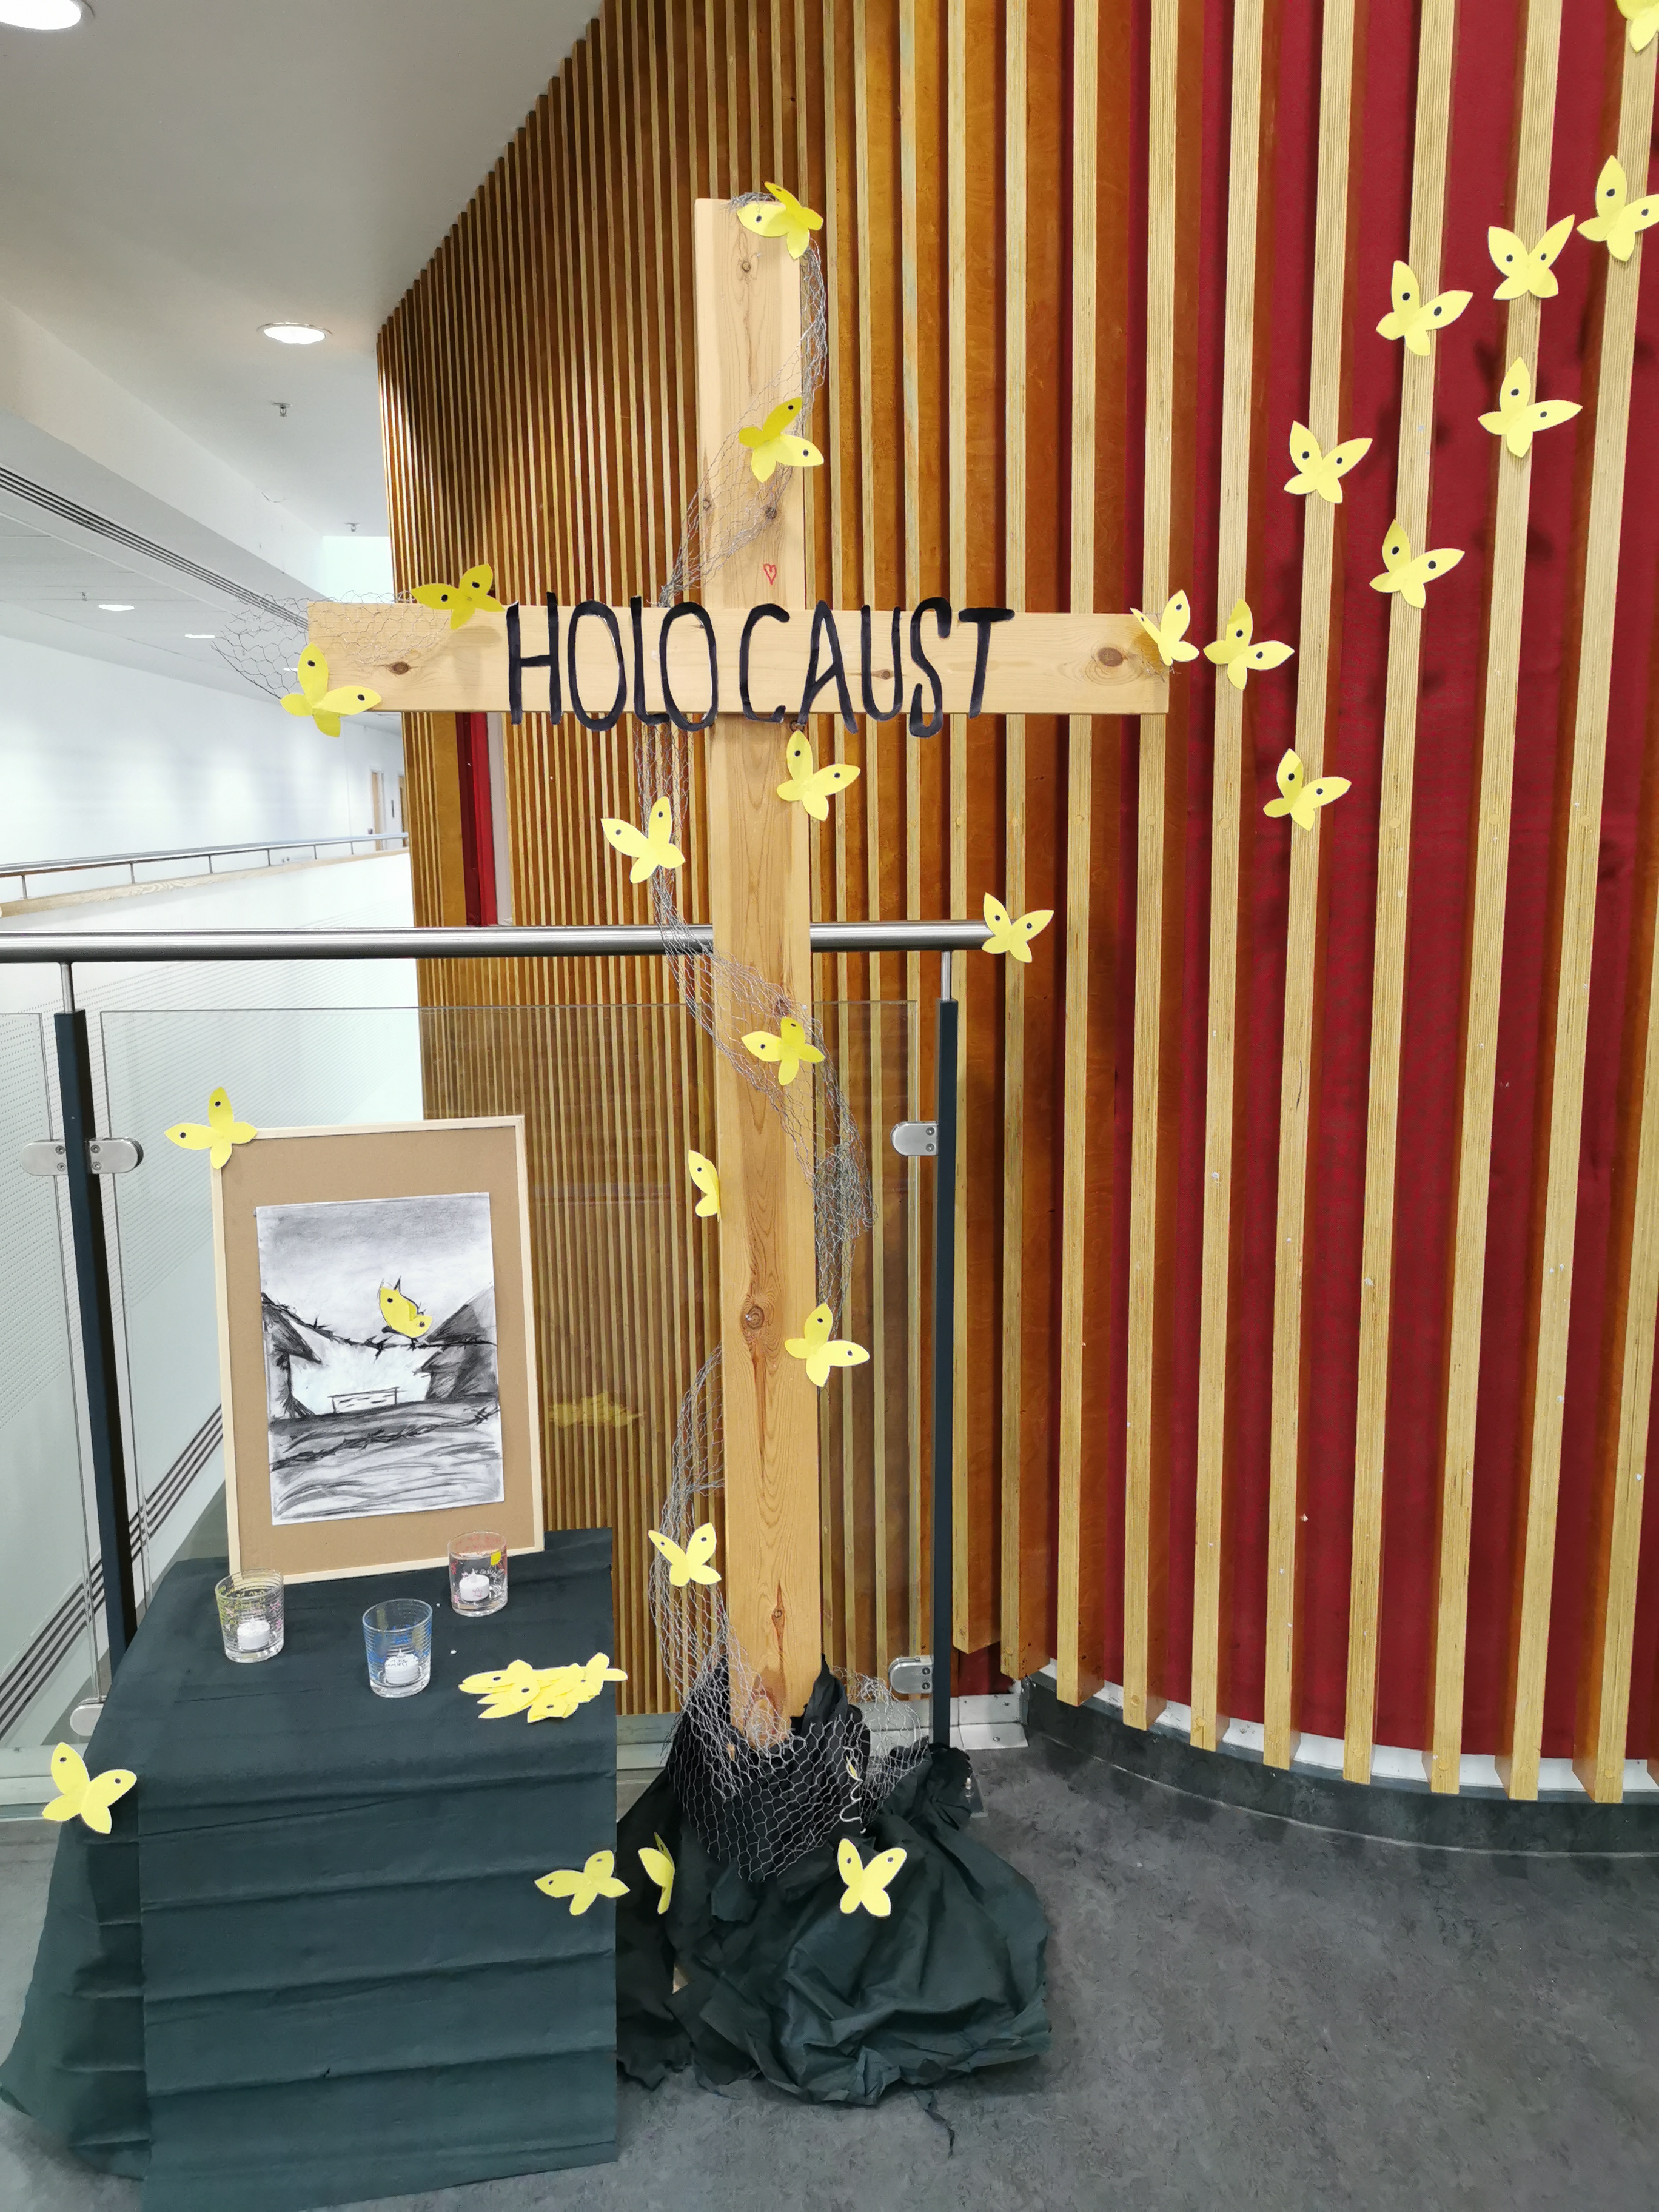 Holocaust Display.jpg